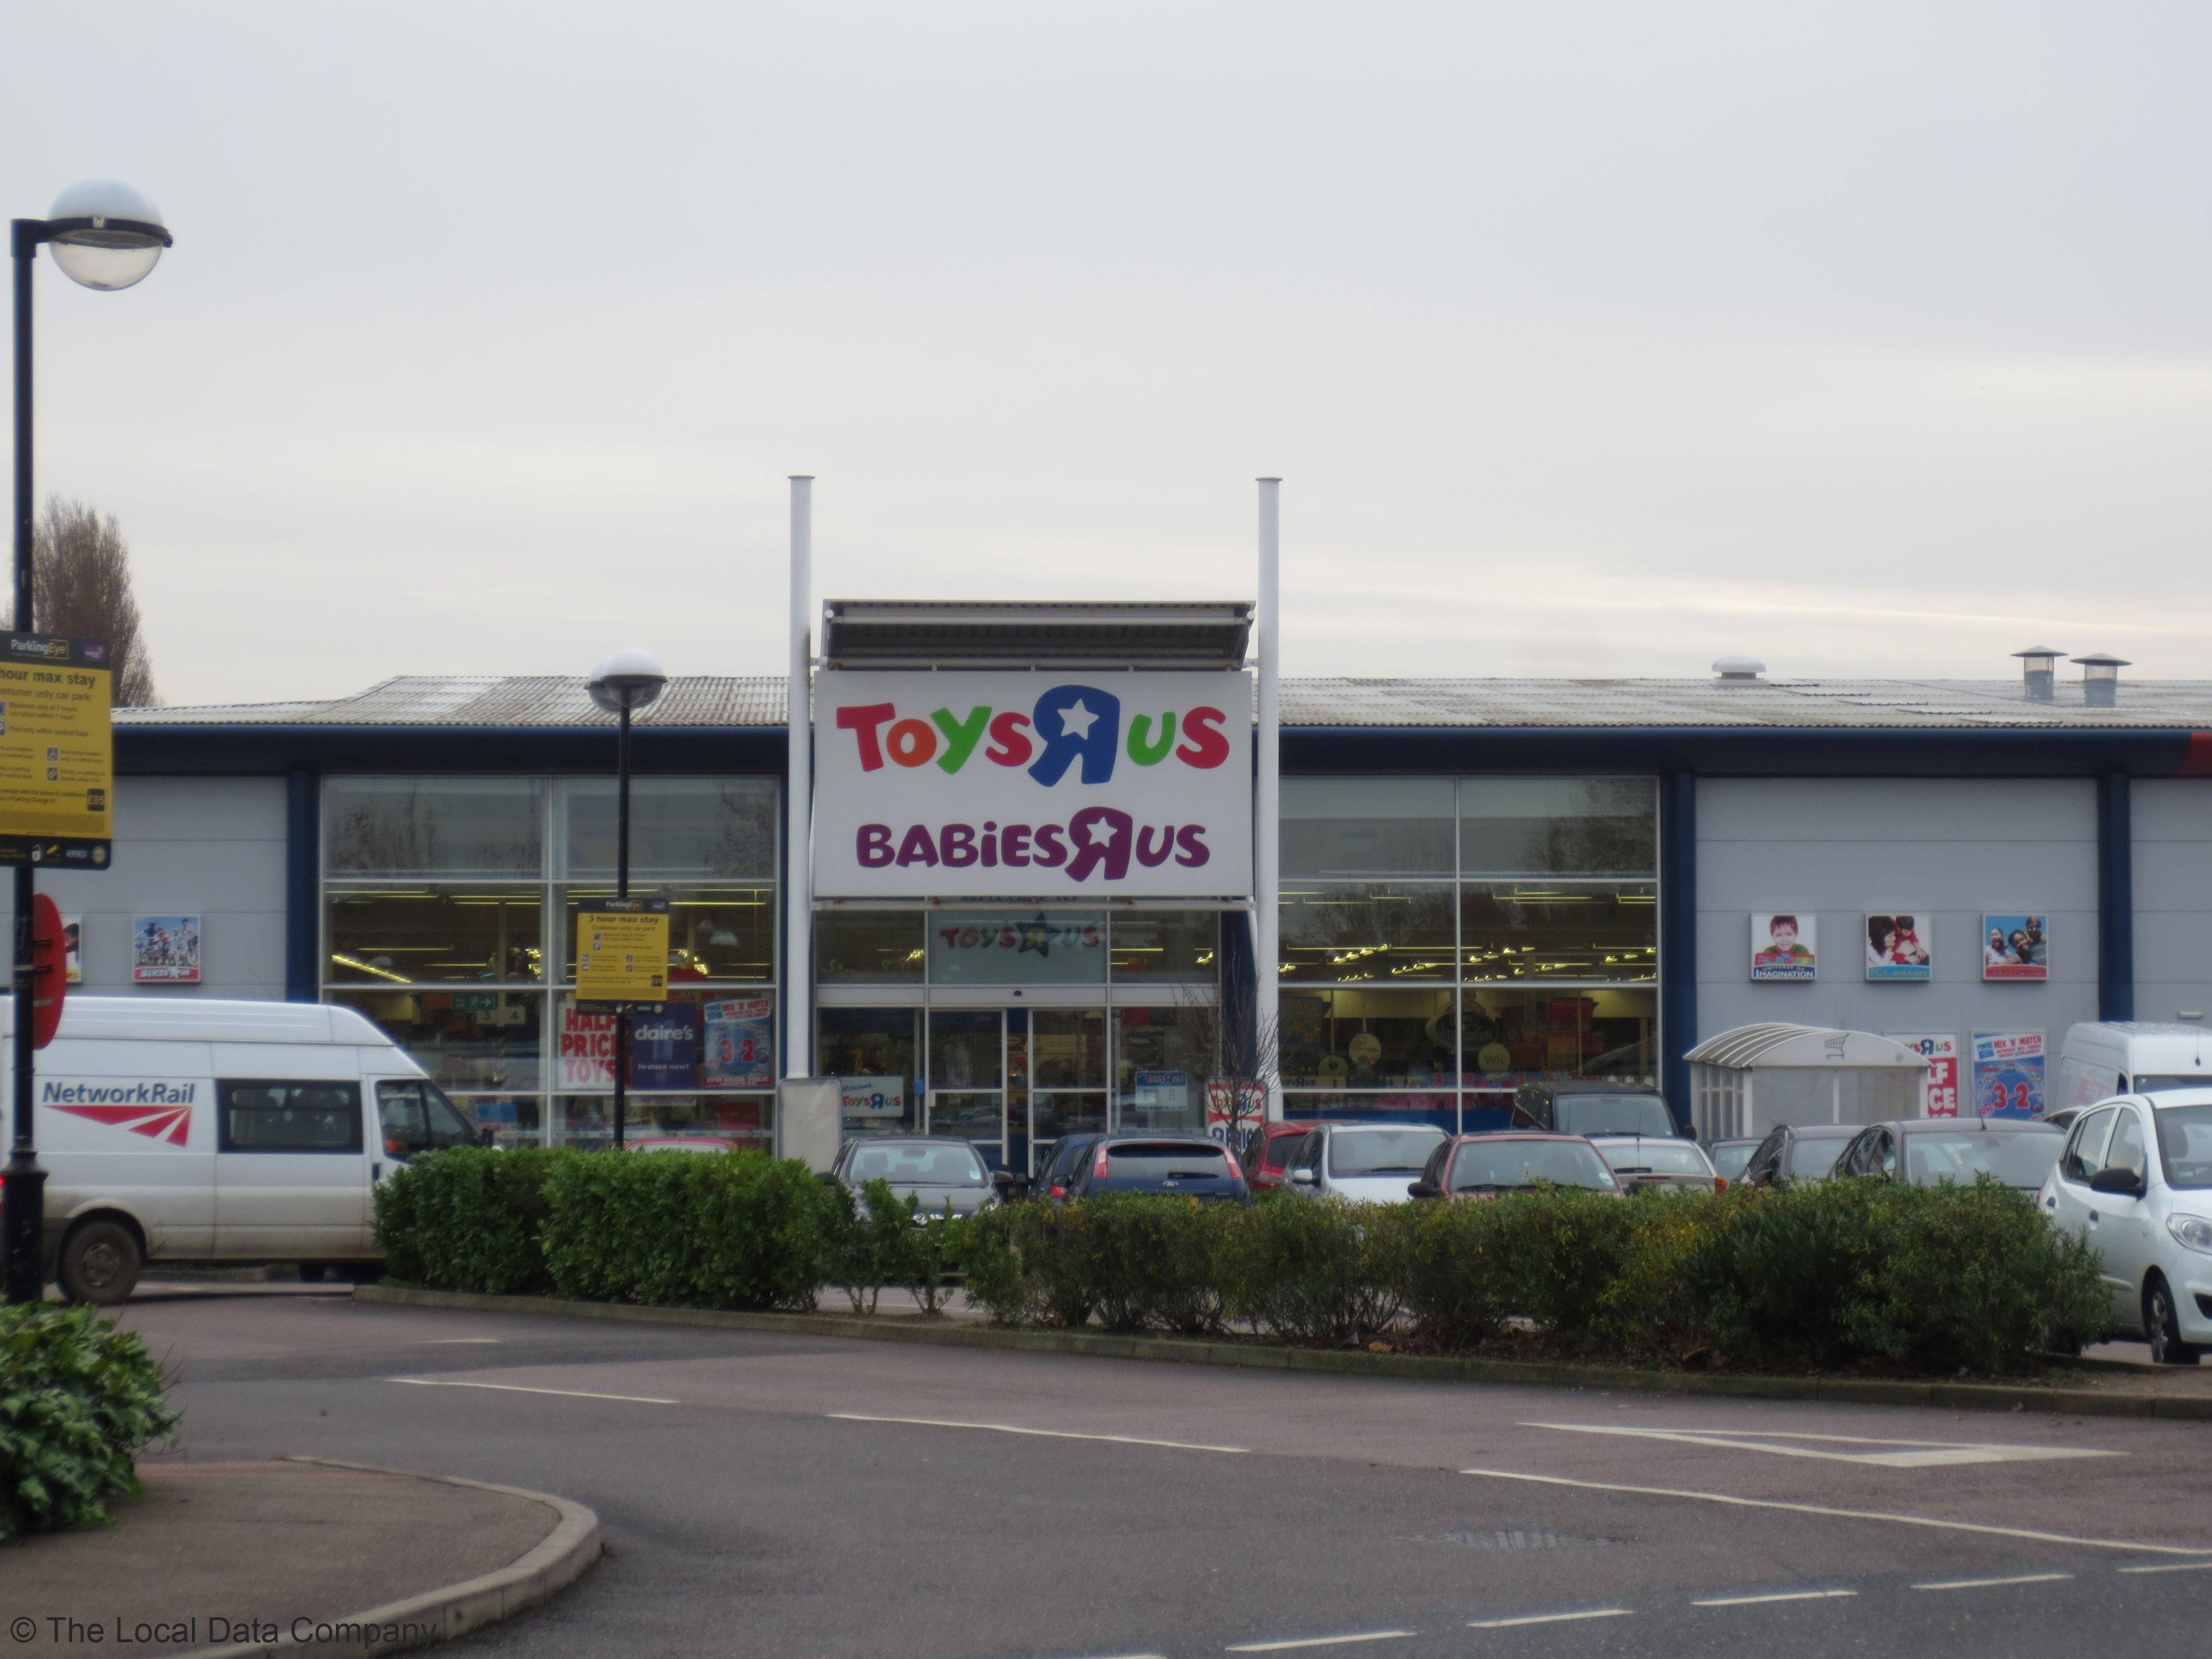 Toys R Us Cambridge.jpg